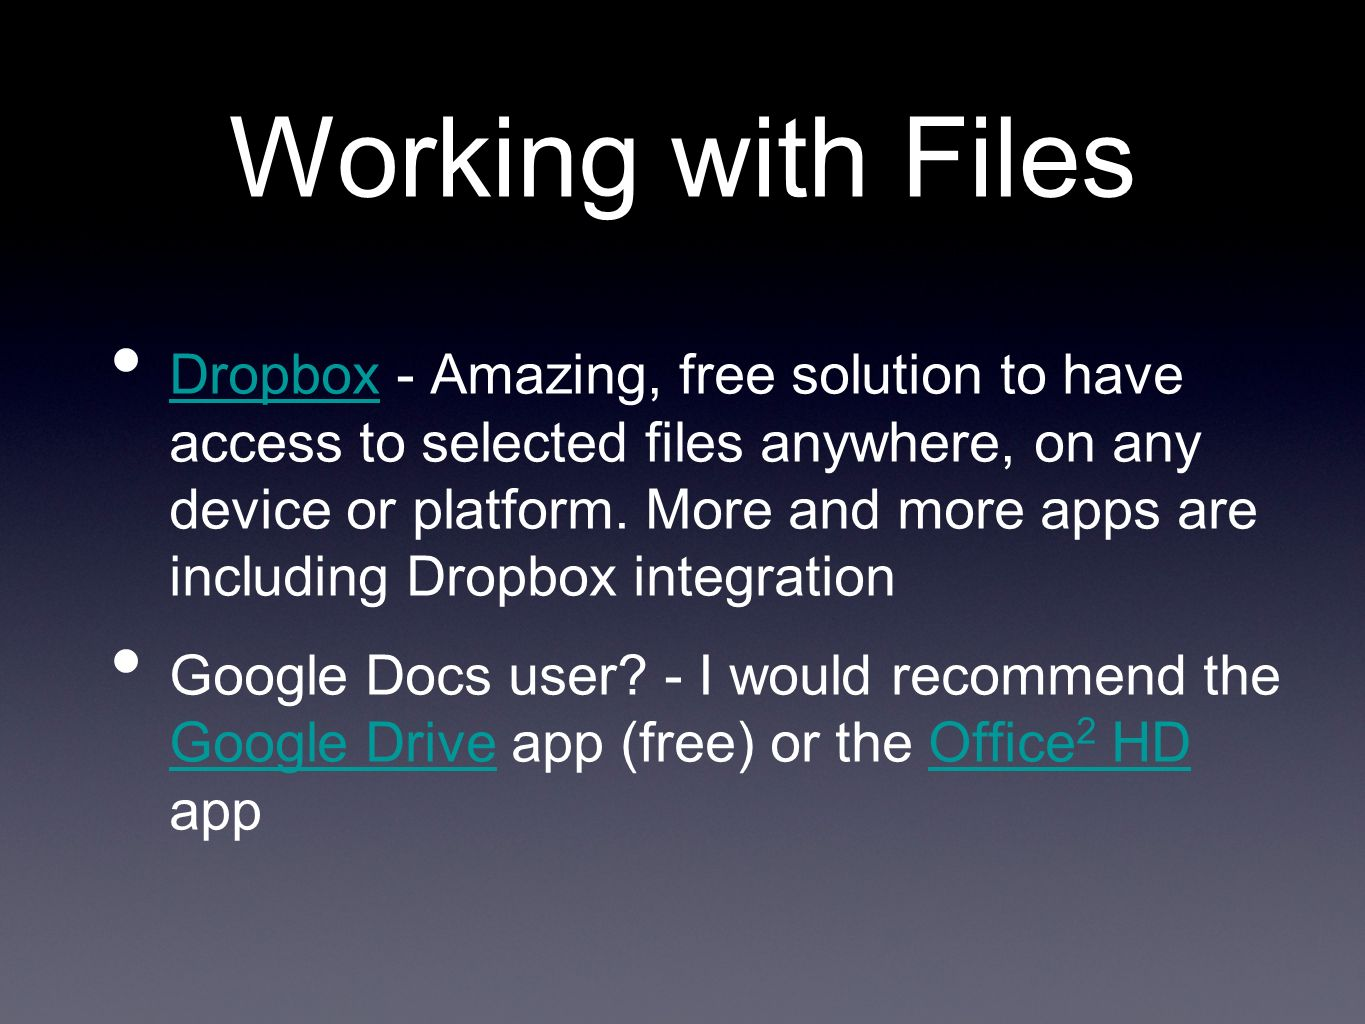 Working with Files Dropbox - Amazing, free solution to have access to selected files anywhere, on any device or platform.